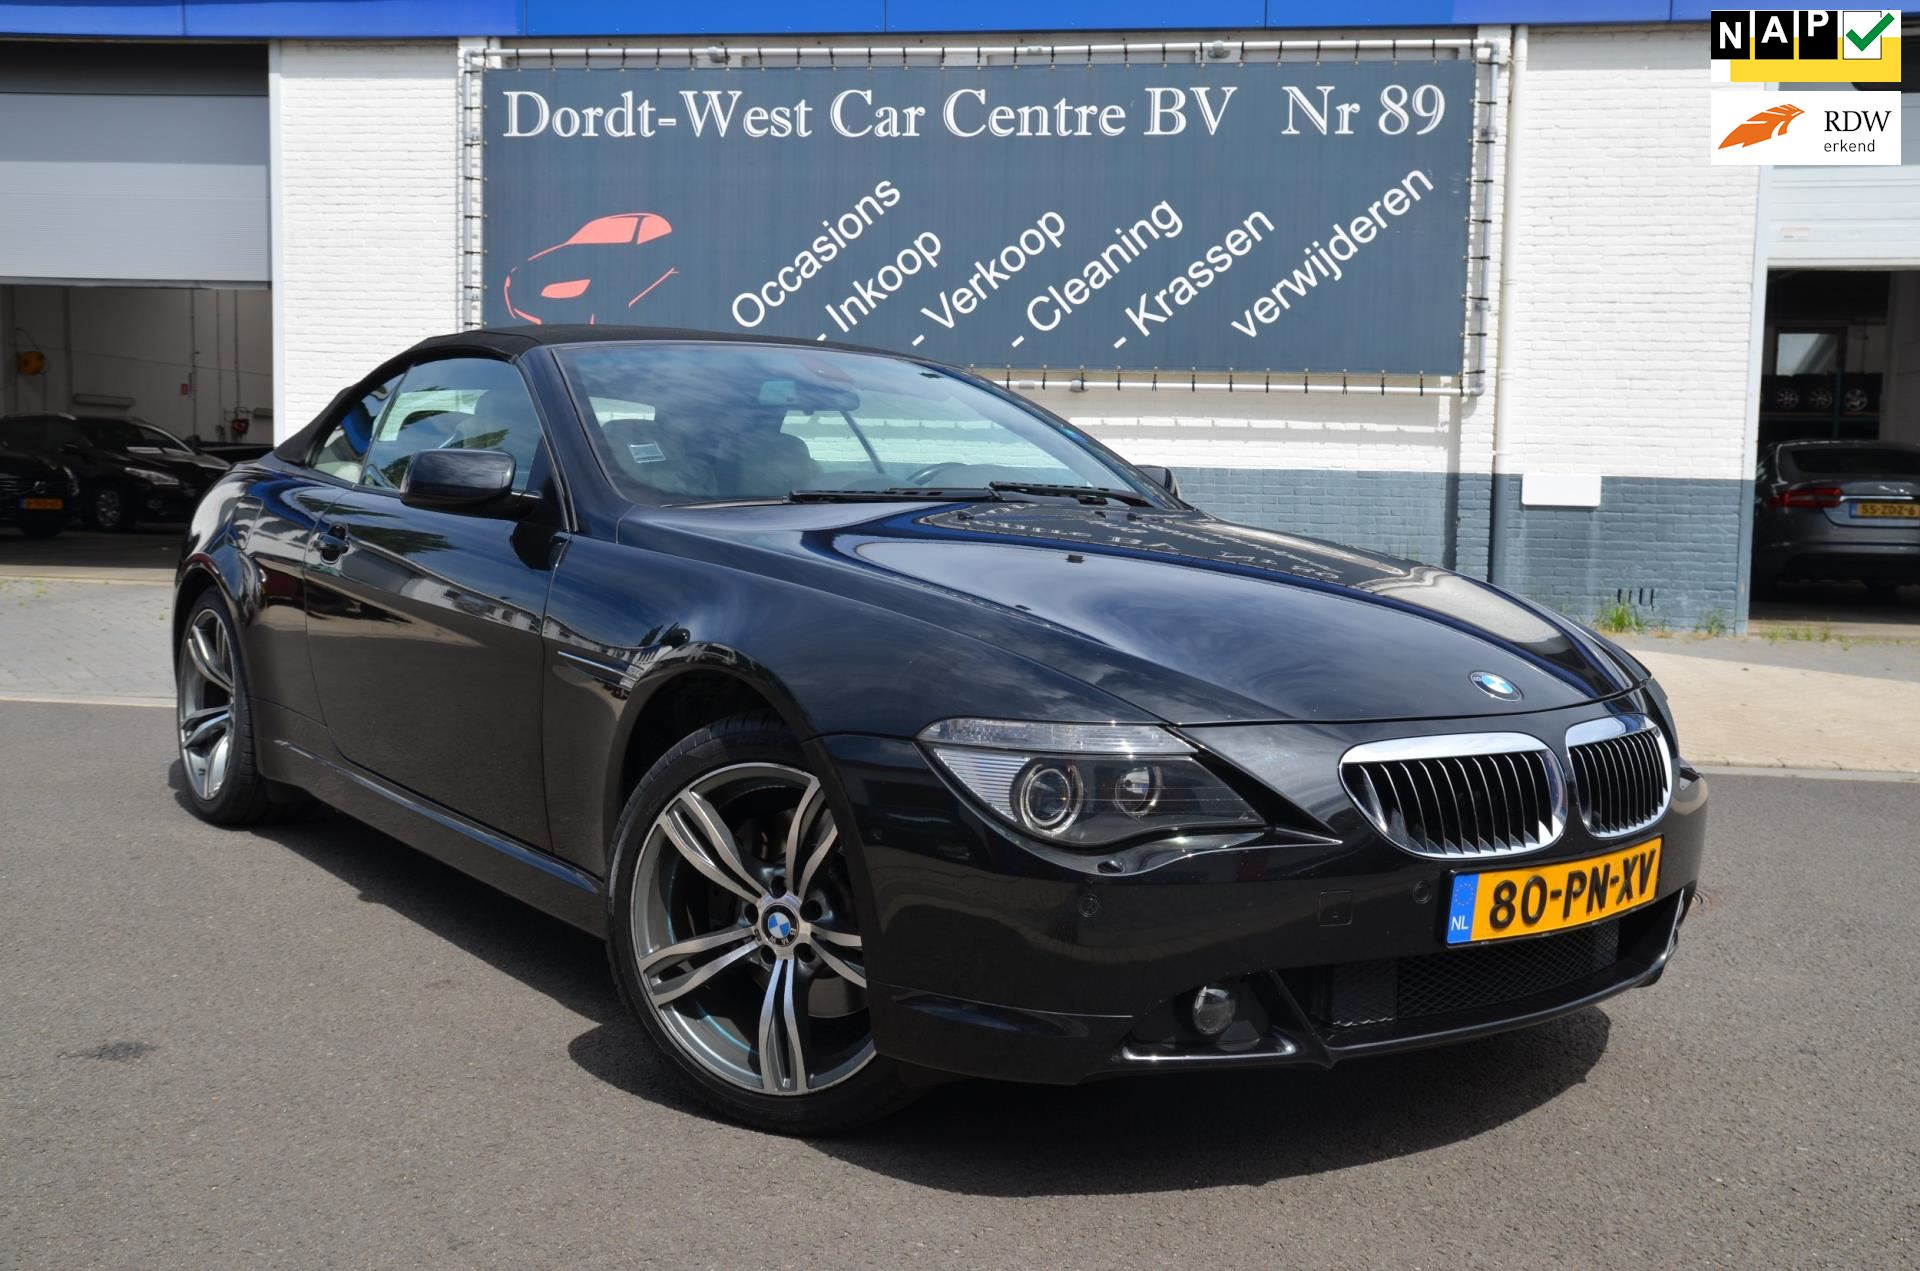 BMW 6-serie Cabrio occasion - Dordt-West Car Centre BV